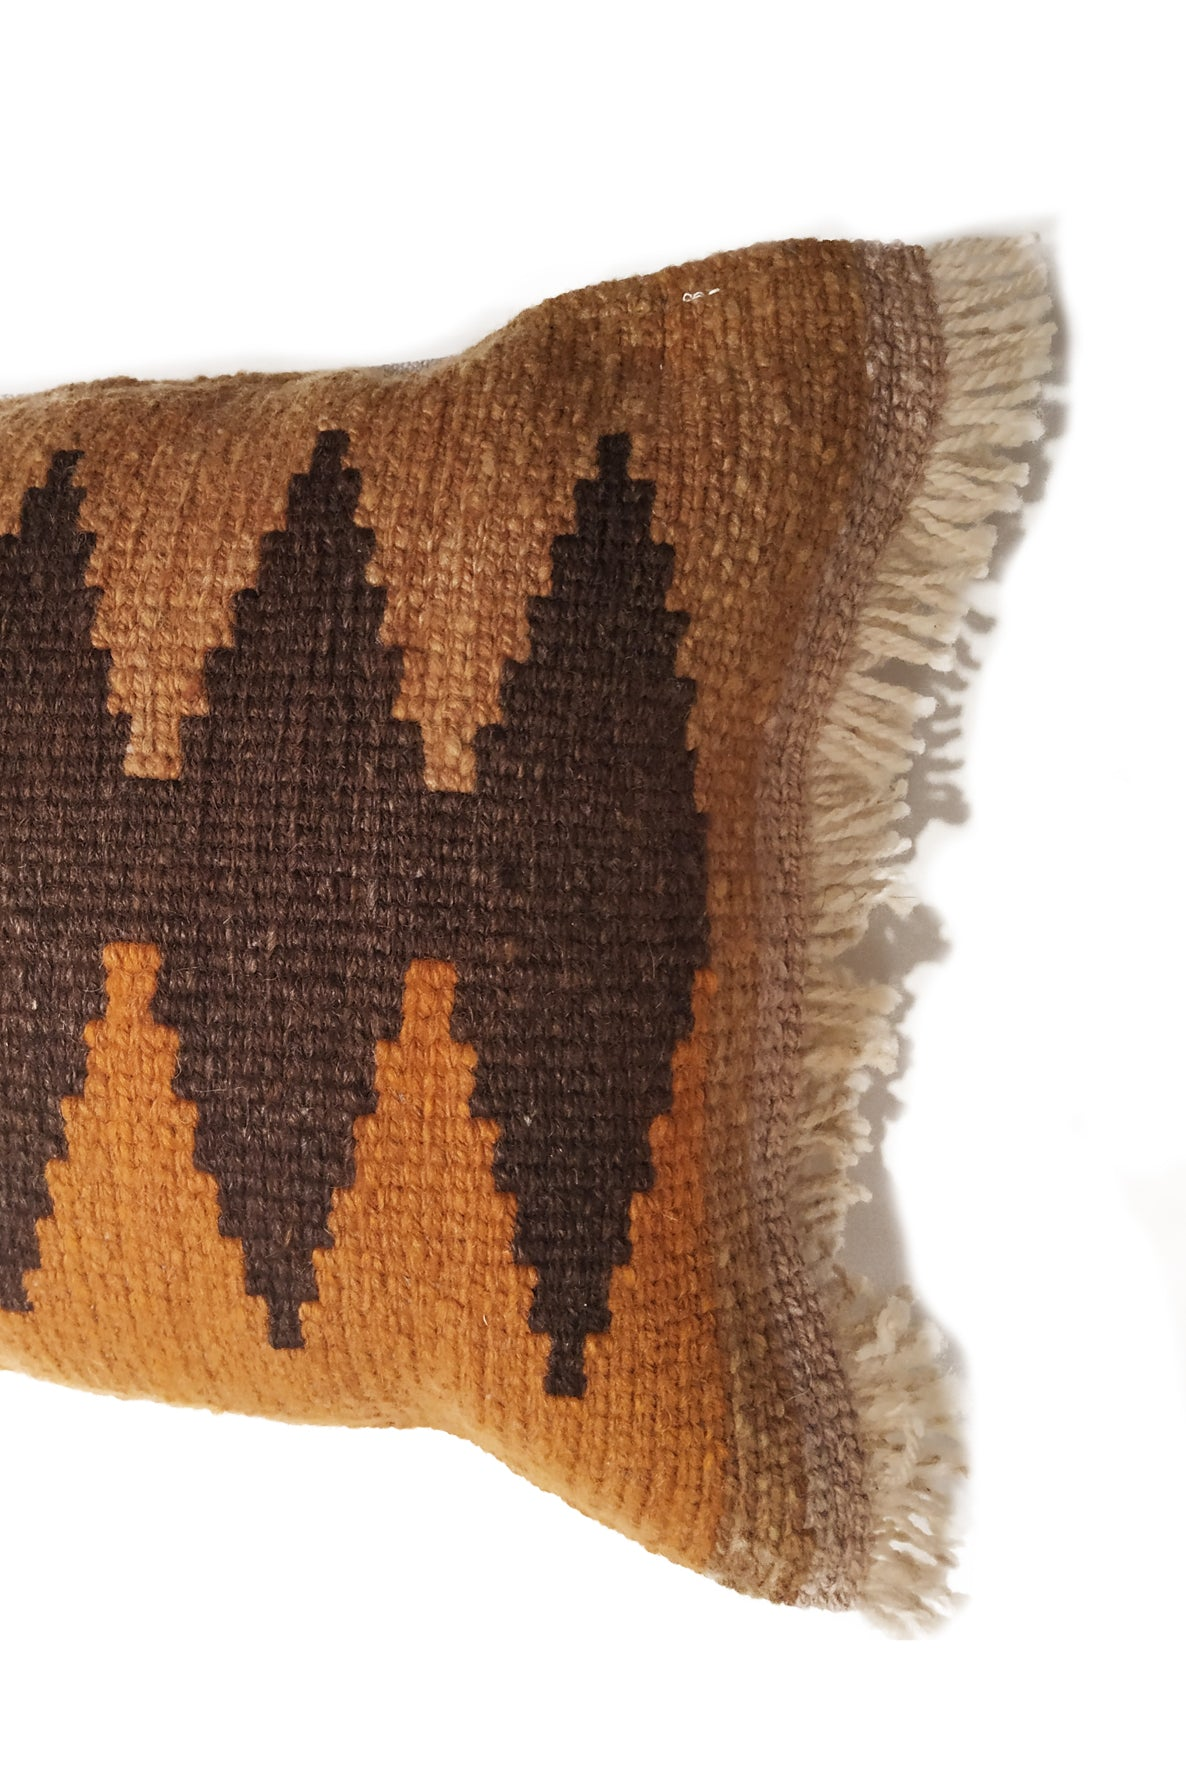 Close up of Orange Tapestry Wool Cushion with Dark Brown Designs.